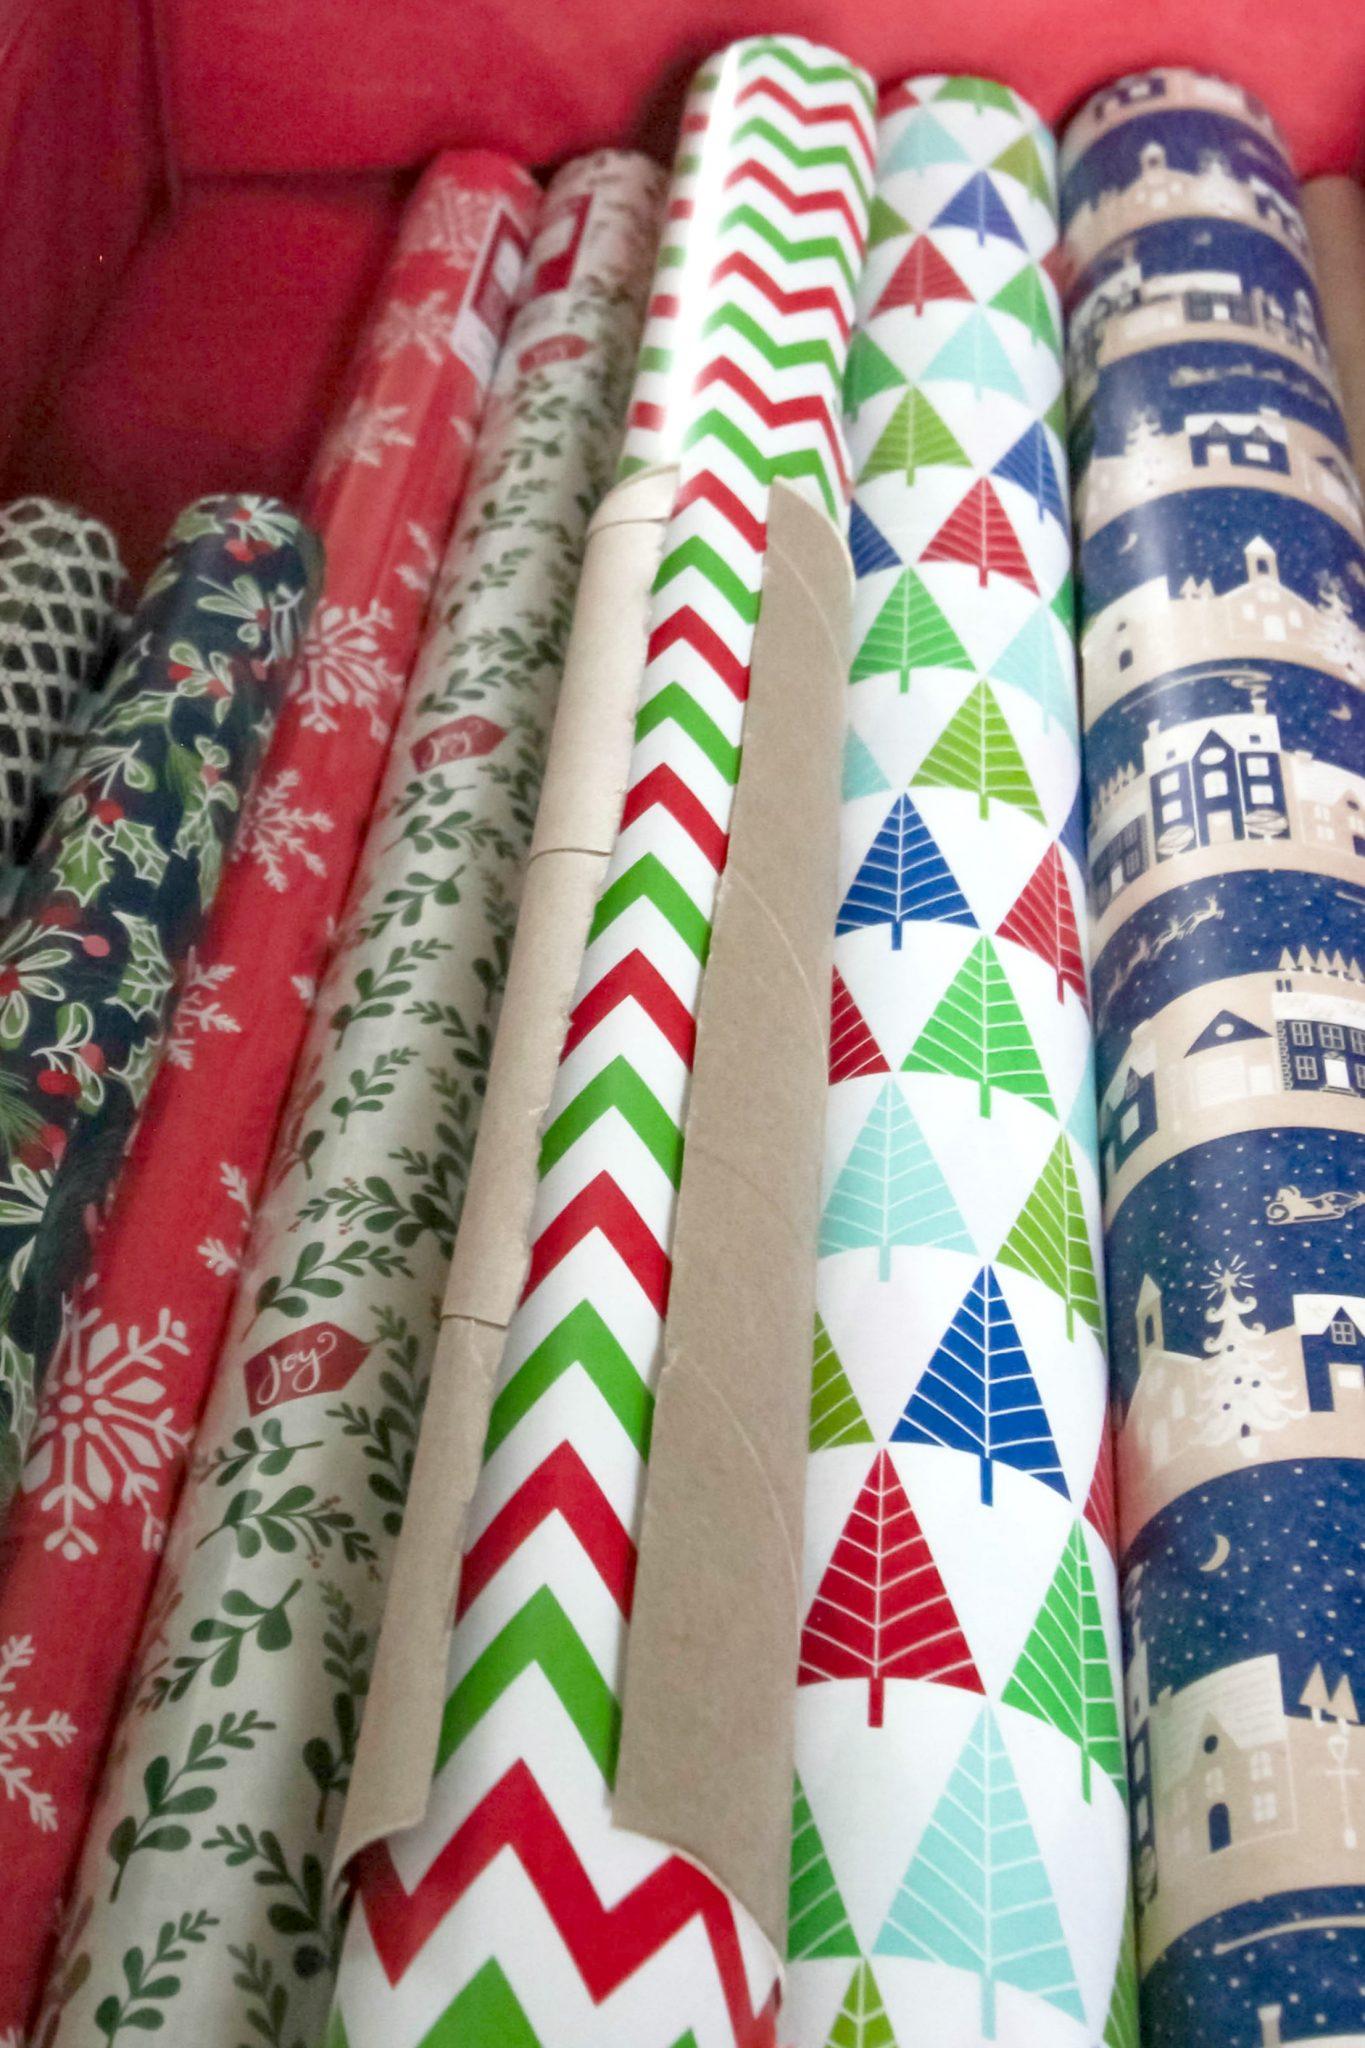 Keep Wrapping Paper Tidy - Step 2 Done!